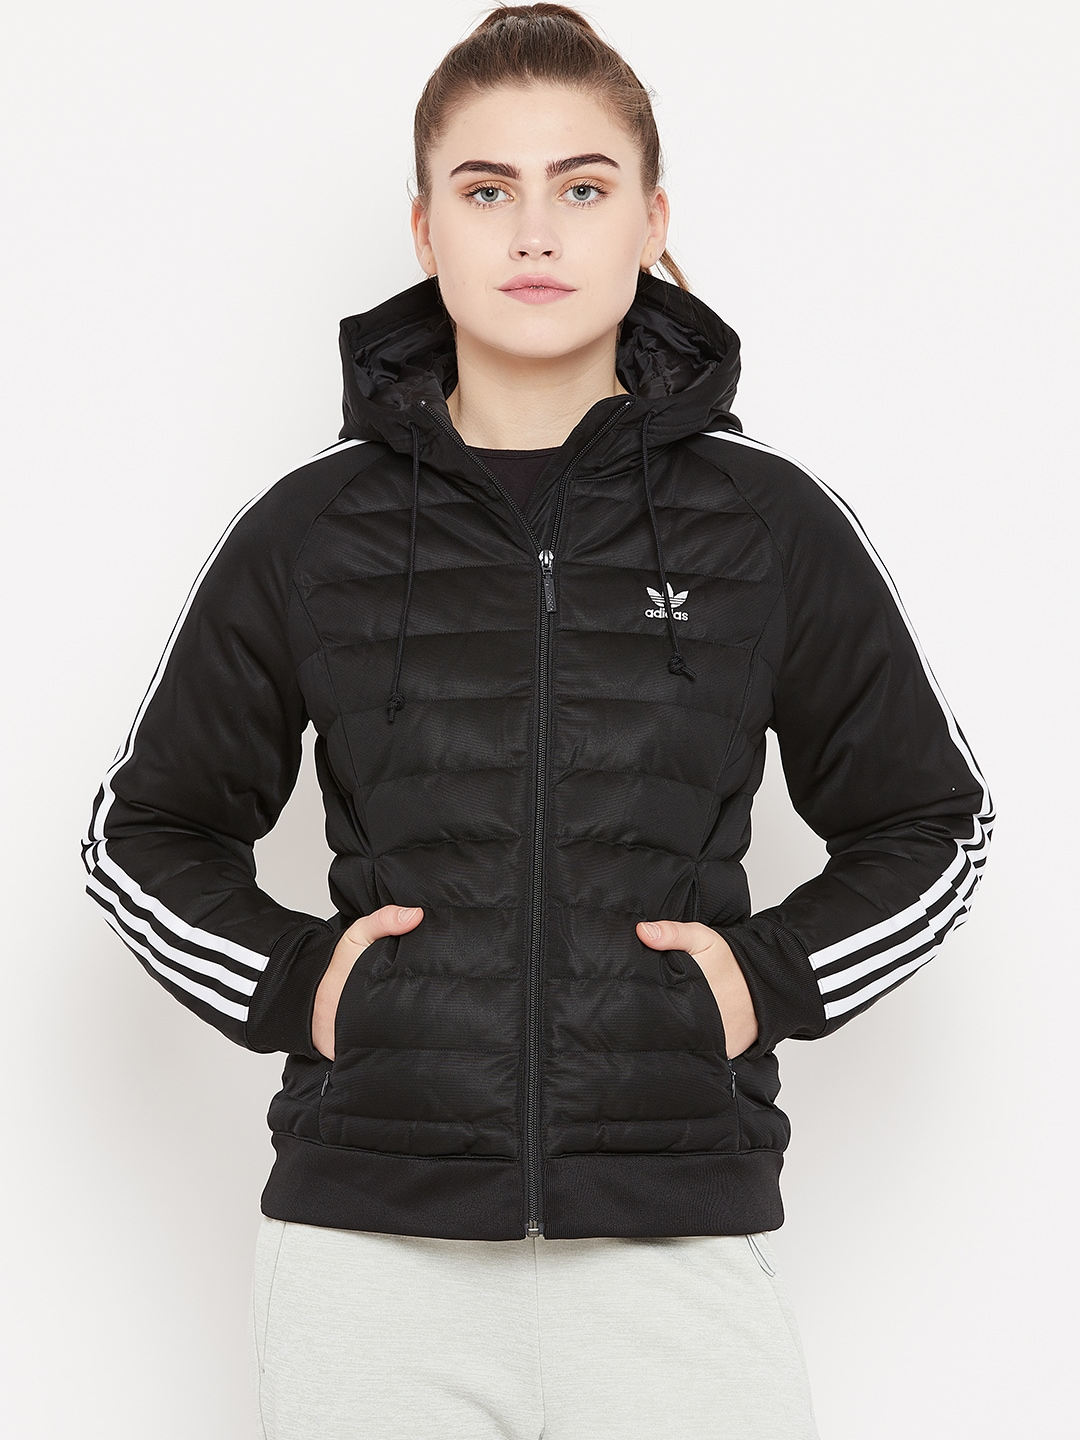 54d93b183954 Adidas Originals Women Jackets - Buy Adidas Originals Women Jackets online  in India